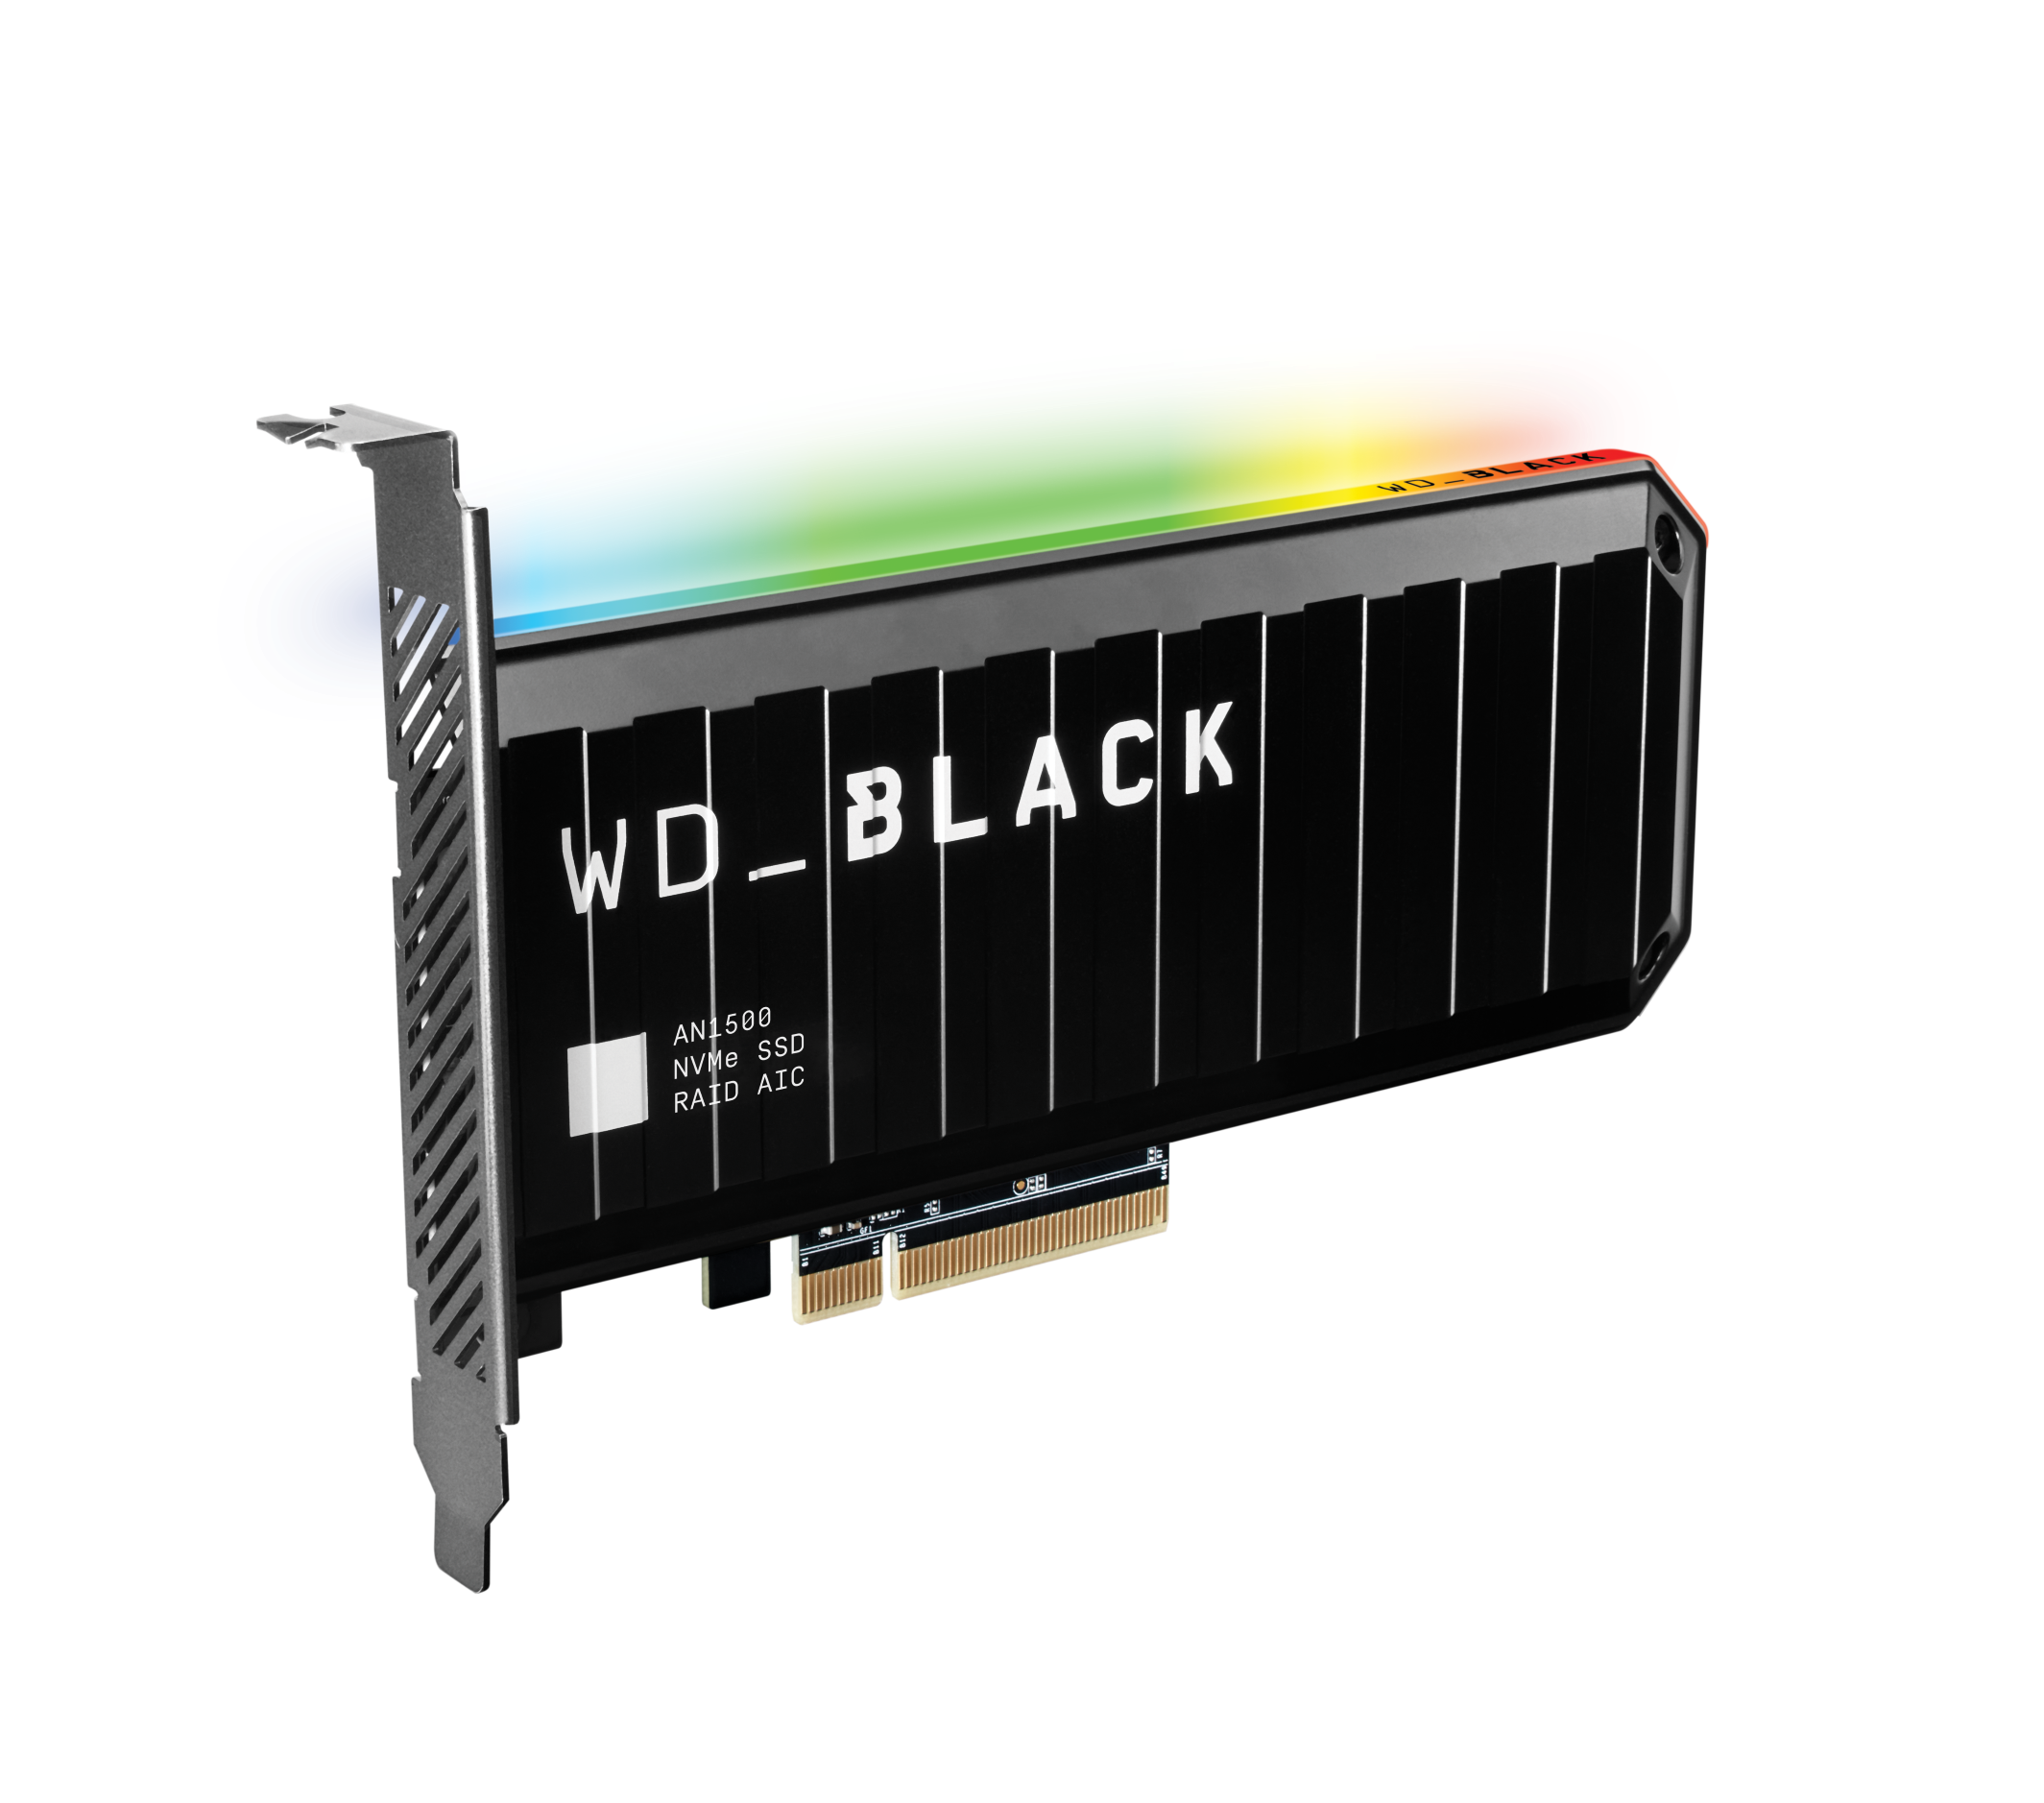 WD image for release 6